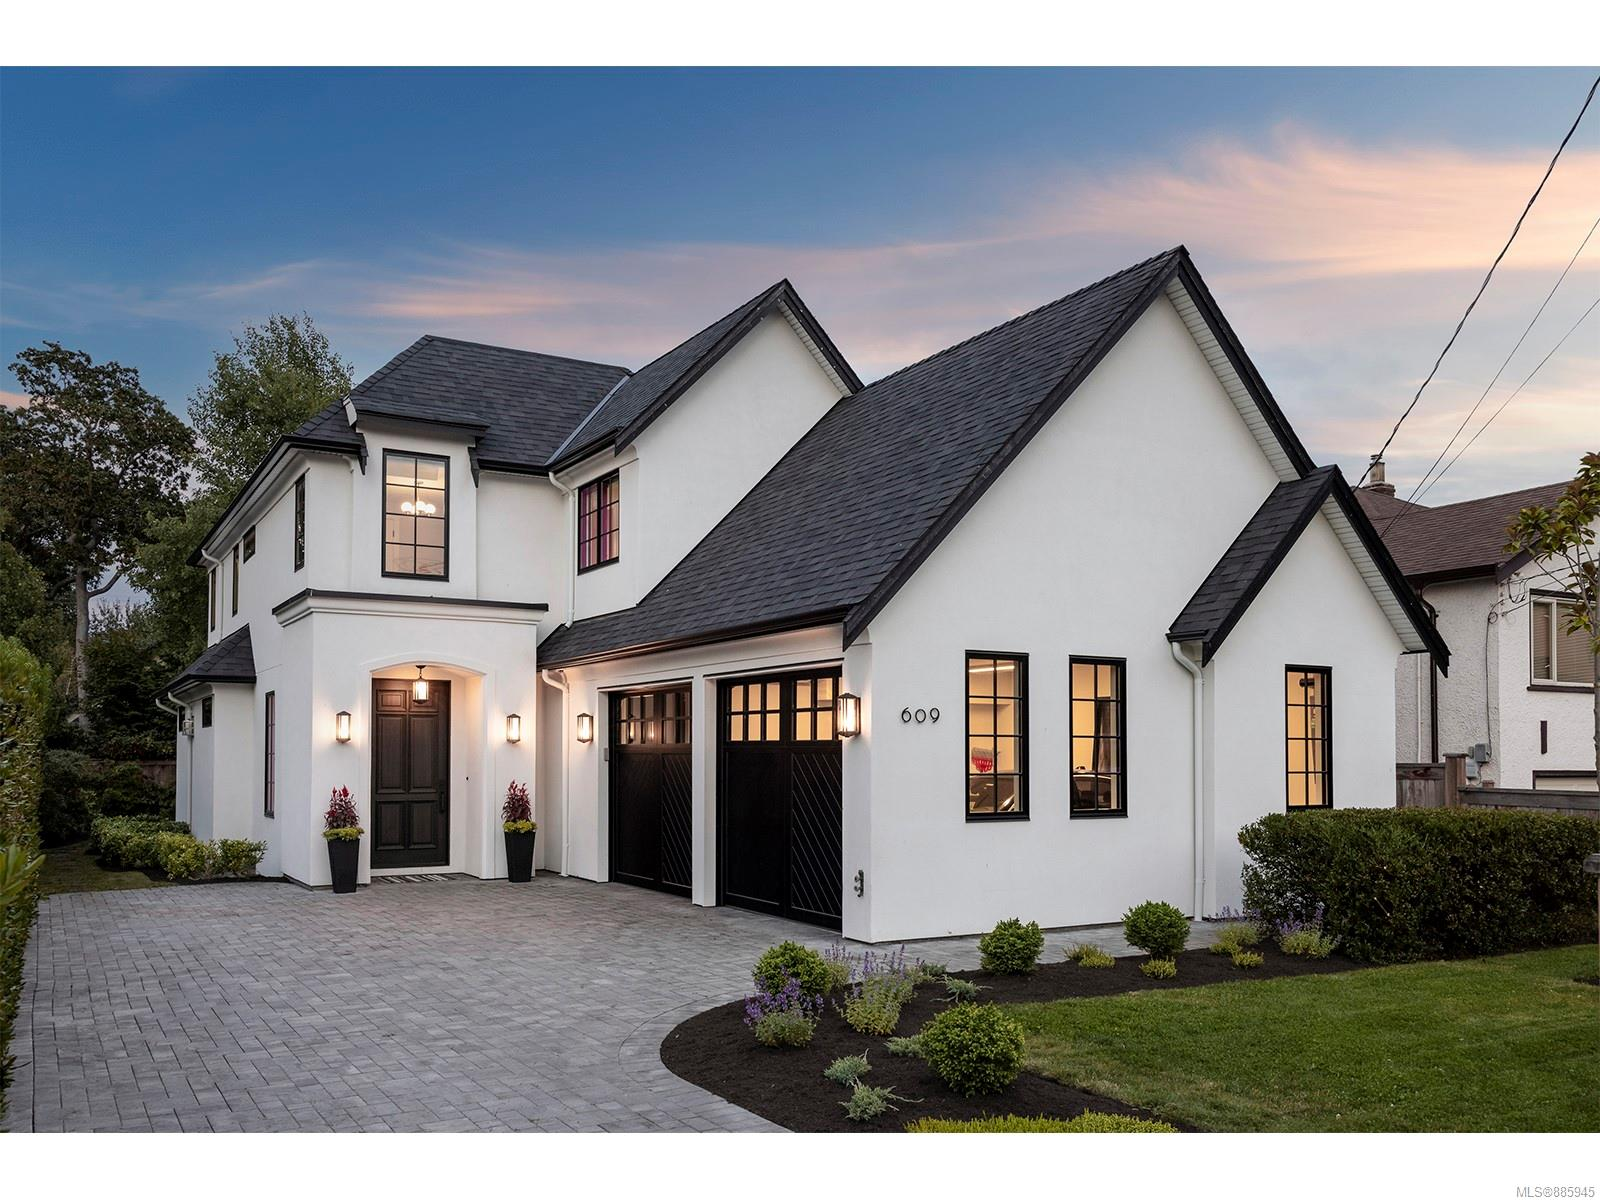 Gorgeous South Oak Bay home in an upscale/highly sought-after neighbourhood just steps from the ocean! This like-new home blends a European style with modern lines, and an airy/open design that features custom herringbone HW floors, heated Carrera marble tiles, Pella windows, gourmet 2-tone chef's kitchen w/10' island, huge windows, wired for Control4, over-height doors & generous living/entertaining spaces with FP and built-ins! Large laundry/mud room on main & custom built-ins/storage/closets throughout the home. Gorgeous master suite boasts a private terrace, marble fireplace & luxurious ensuite bath w/floor to ceiling Carerra marble. Two additional bedrooms upstairs, plus fully finished lower level, media room/games area, custom walnut wet bar, wine room & additional bedroom/bath. Easy care fenced & landscaped property features private patio w/gas Fireplace....steps from the beach & close to the best schools & all amenities, Oak Bay Village, Golfing and recreation!